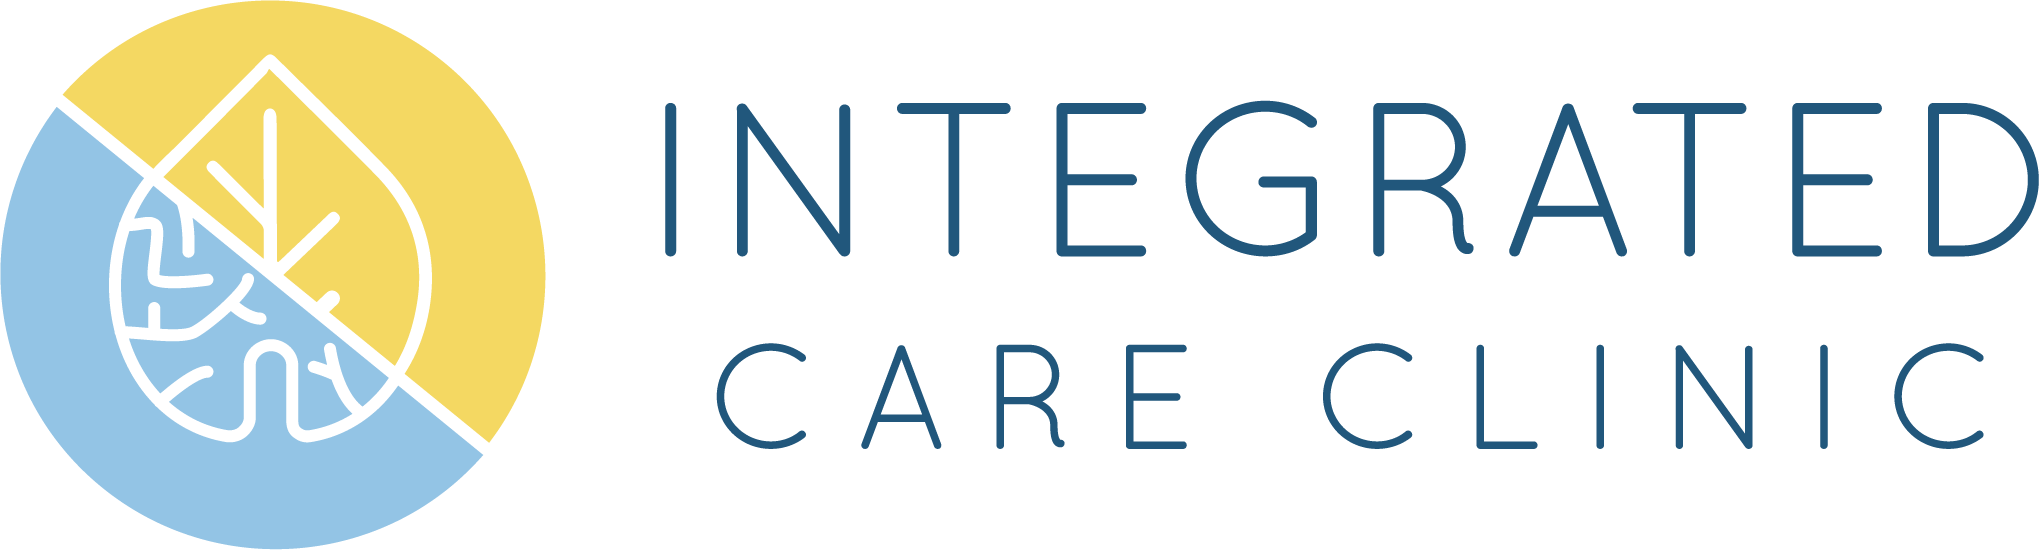 Integrated Care Clinic | Saint Petersburg, FL